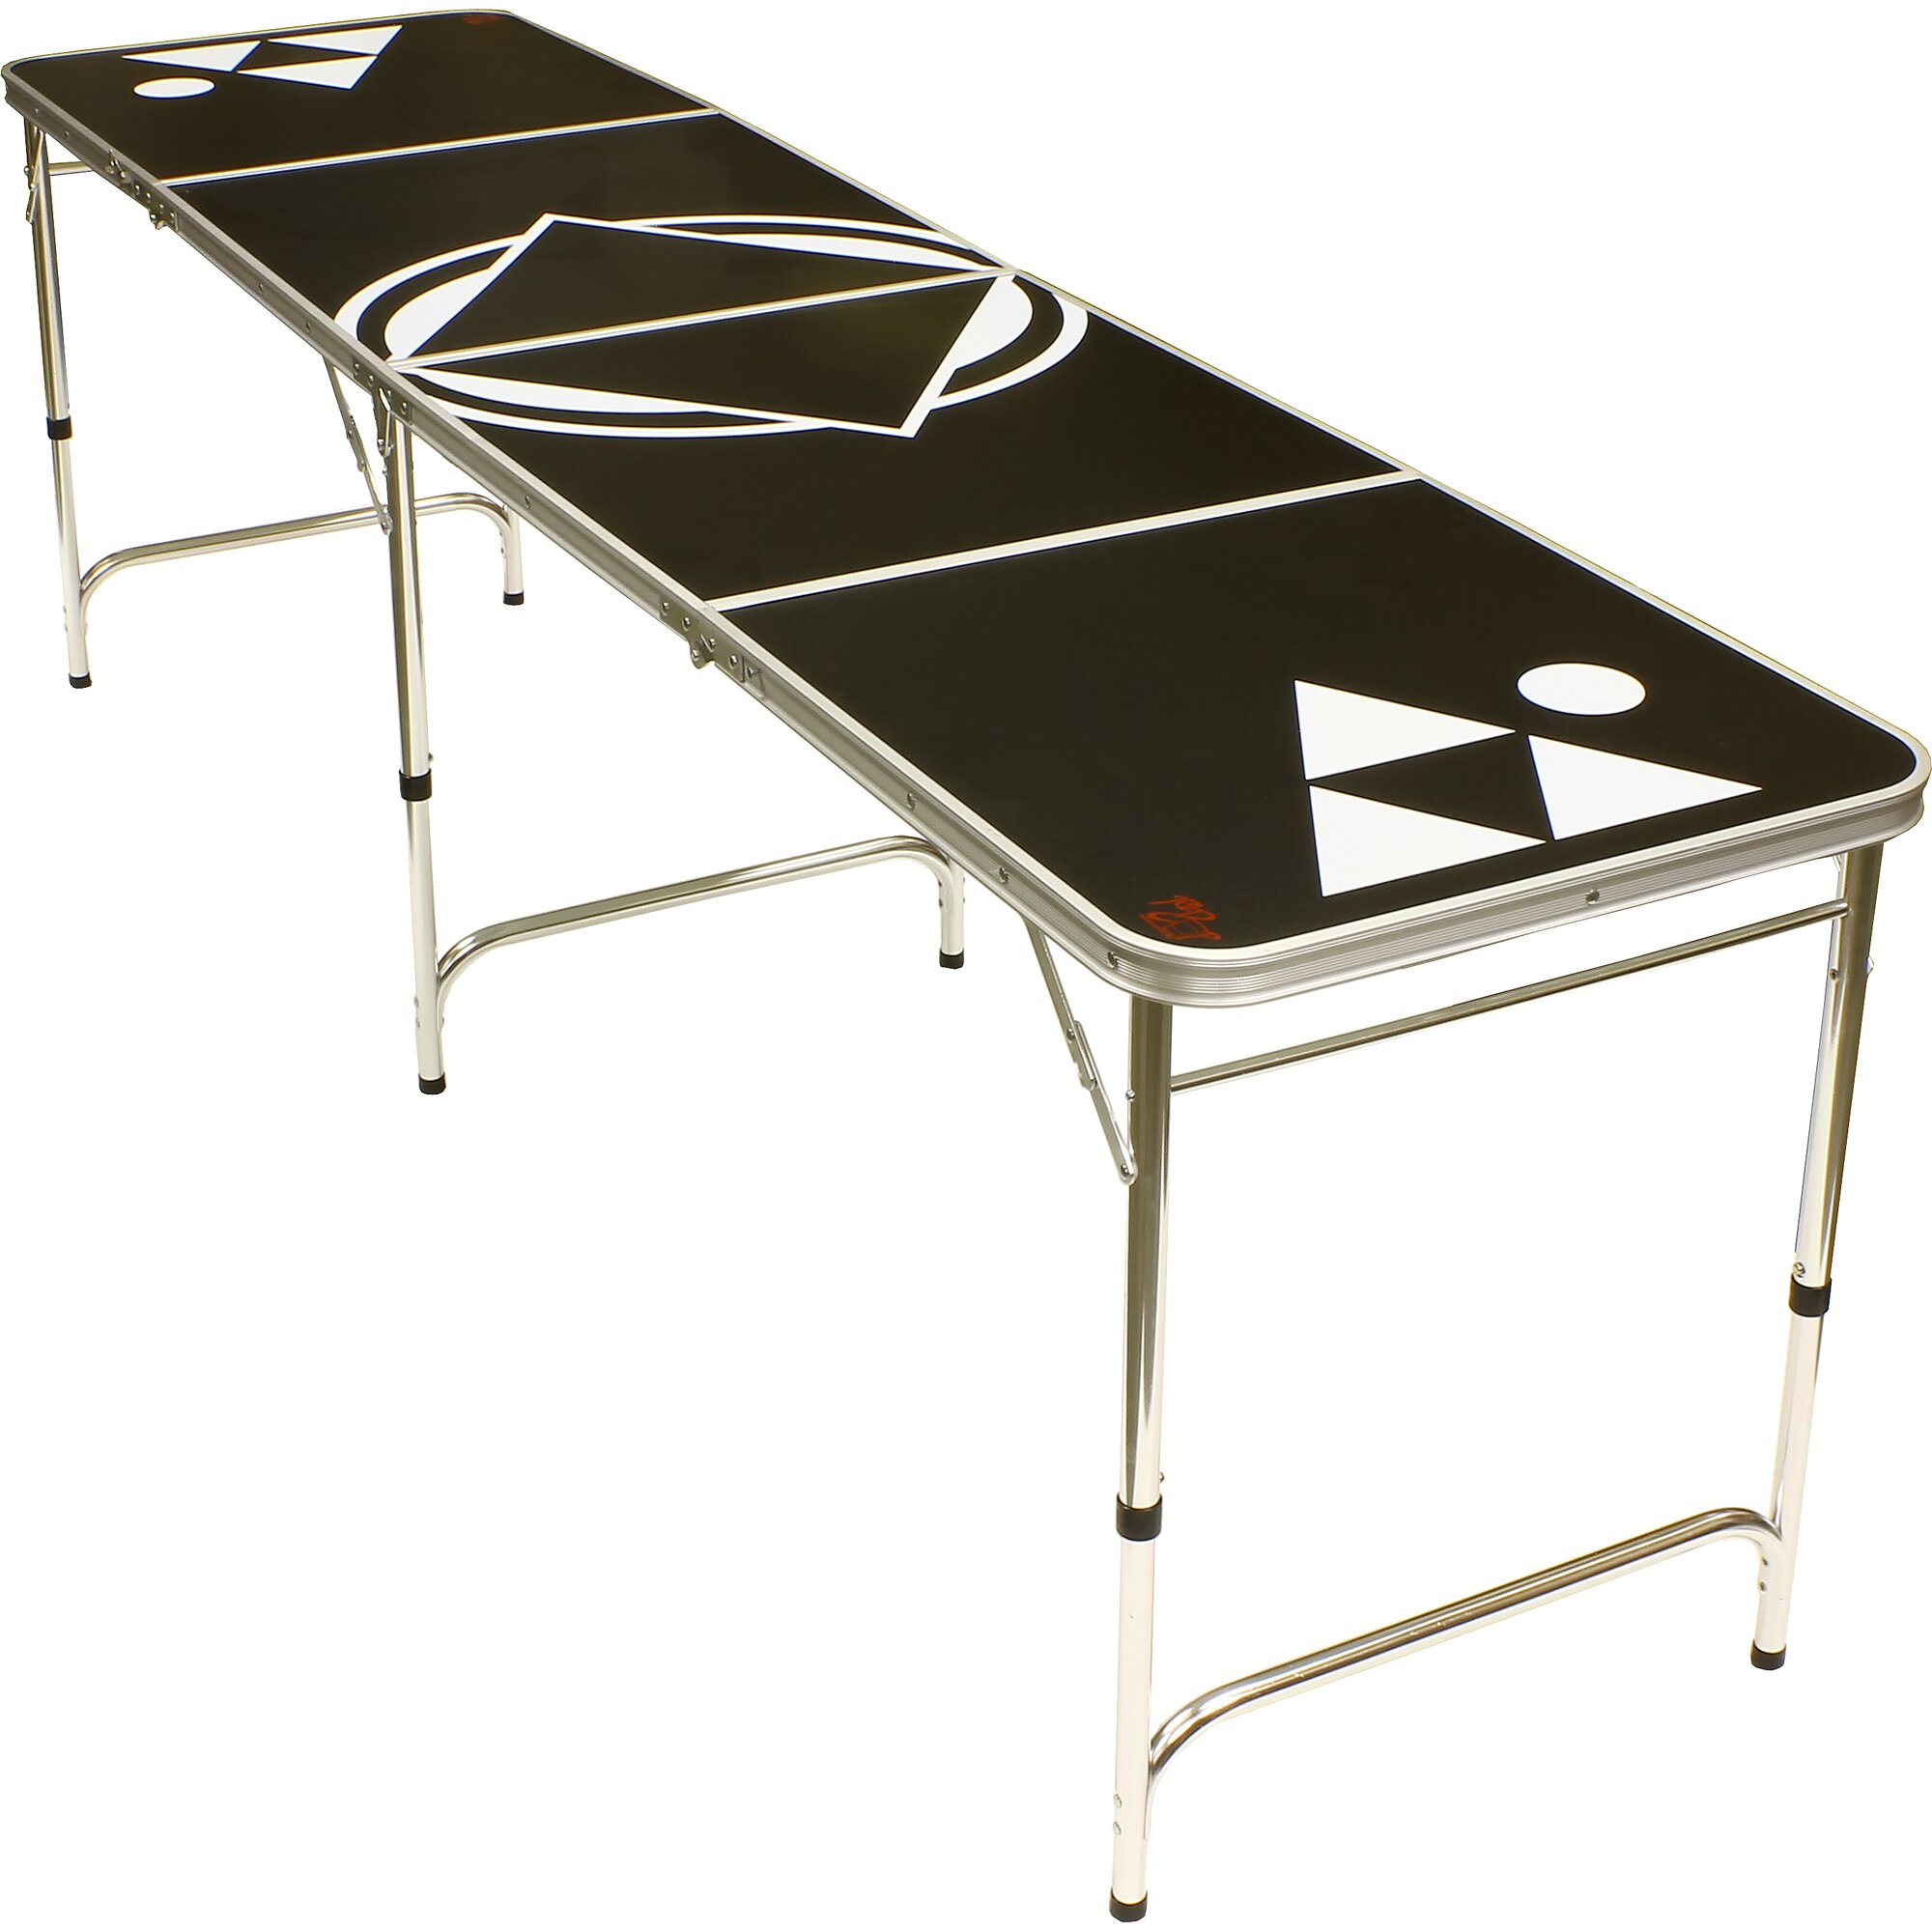 Hockey beer pong table - Black Beer Pong Table In Standard Aluminum